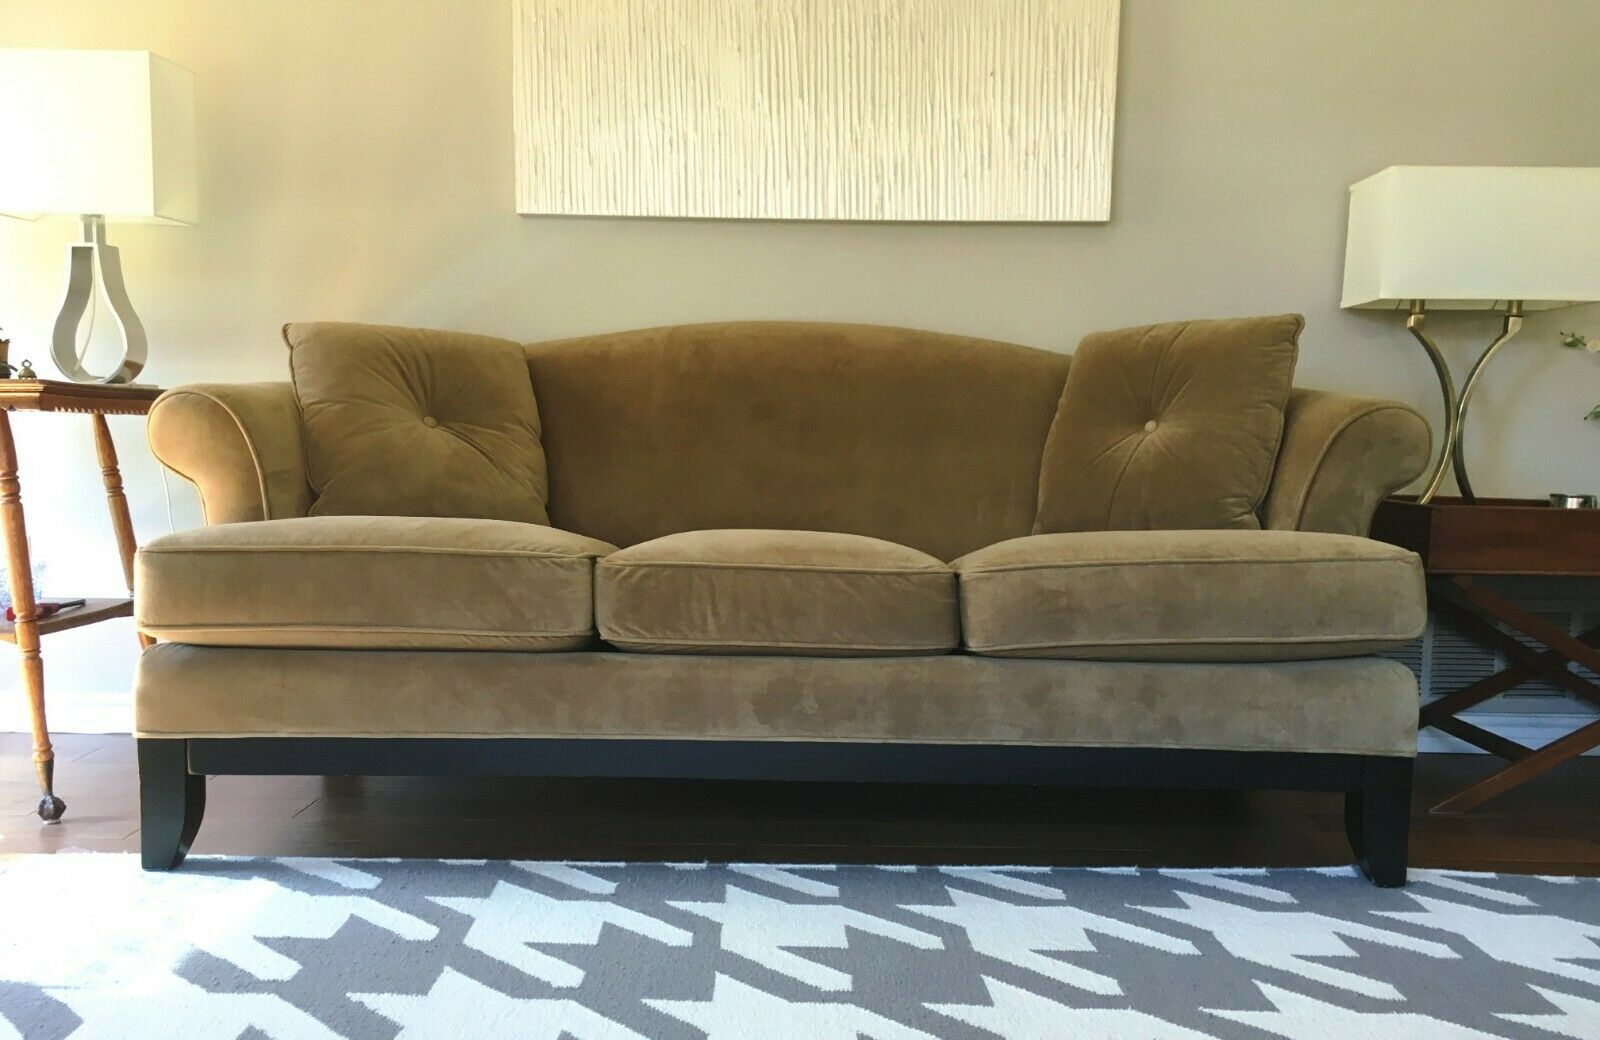 Phenomenal Sofa Couch In Excellent Condition With Quality Hand Tied Cjindustries Chair Design For Home Cjindustriesco